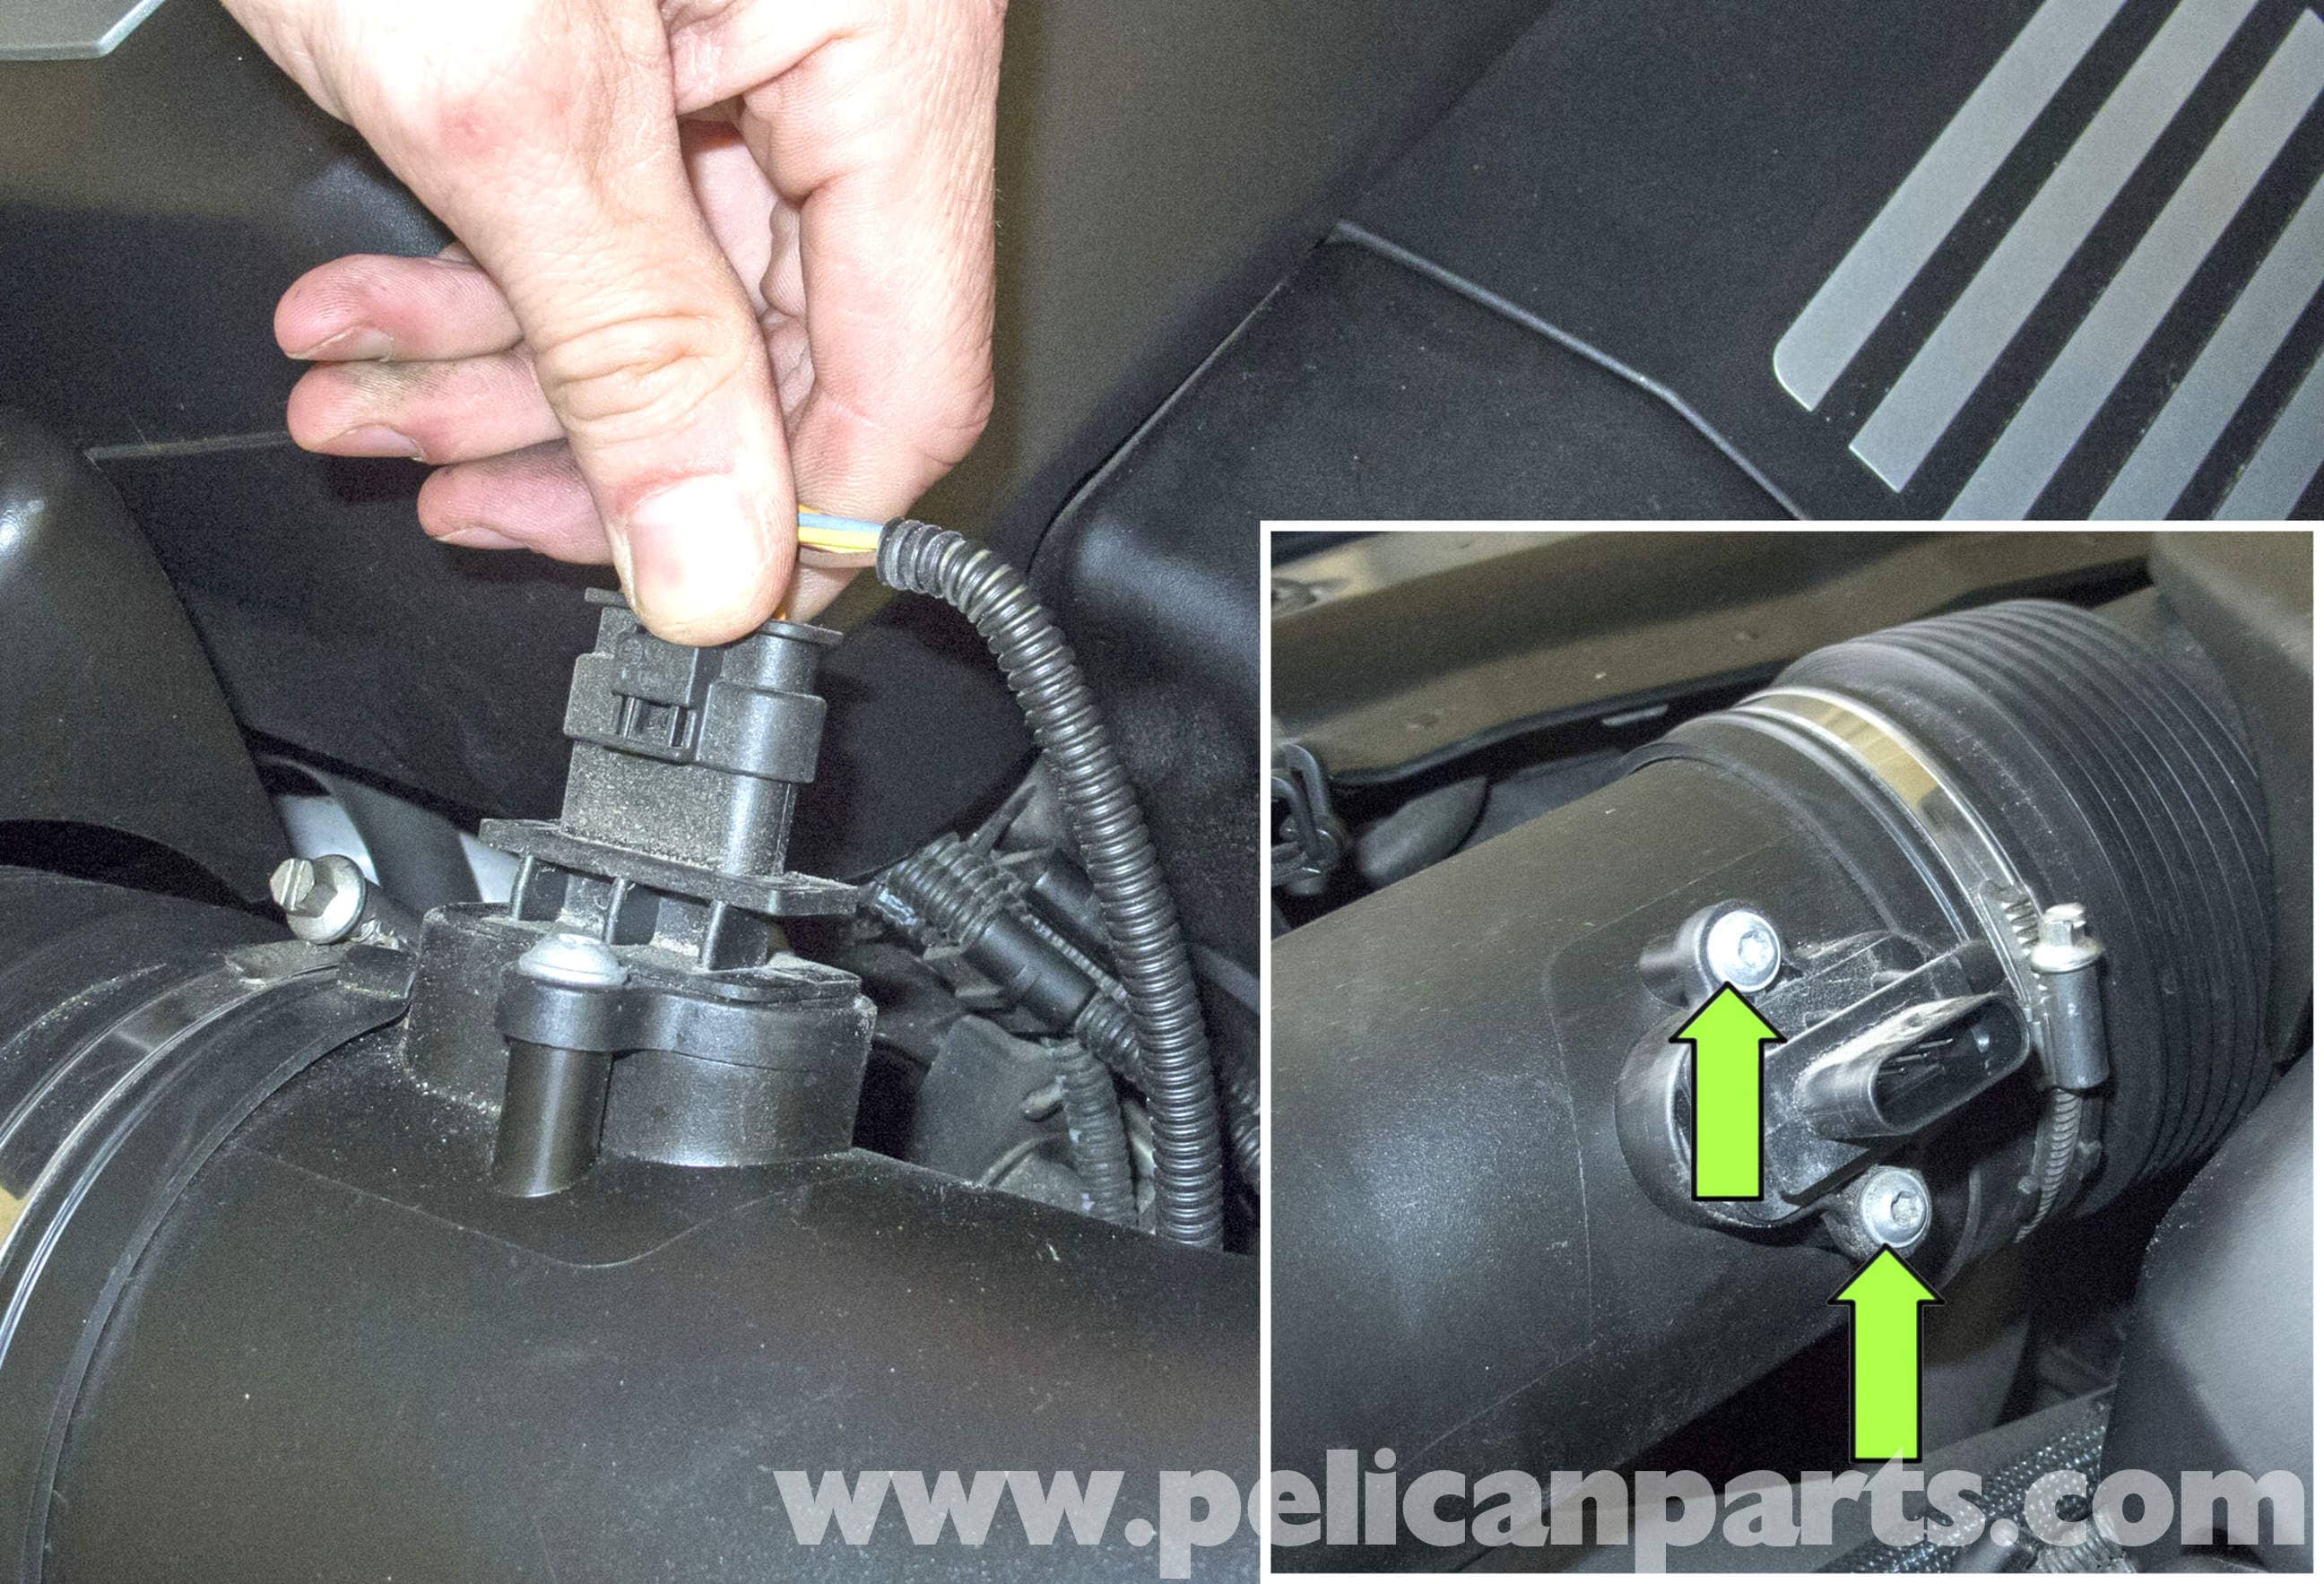 Check Engine Light Flashing >> BMW E60 5-Series Mass Air Flow Sensor Replacement (2003-2010) - Pelican Parts Technical Article